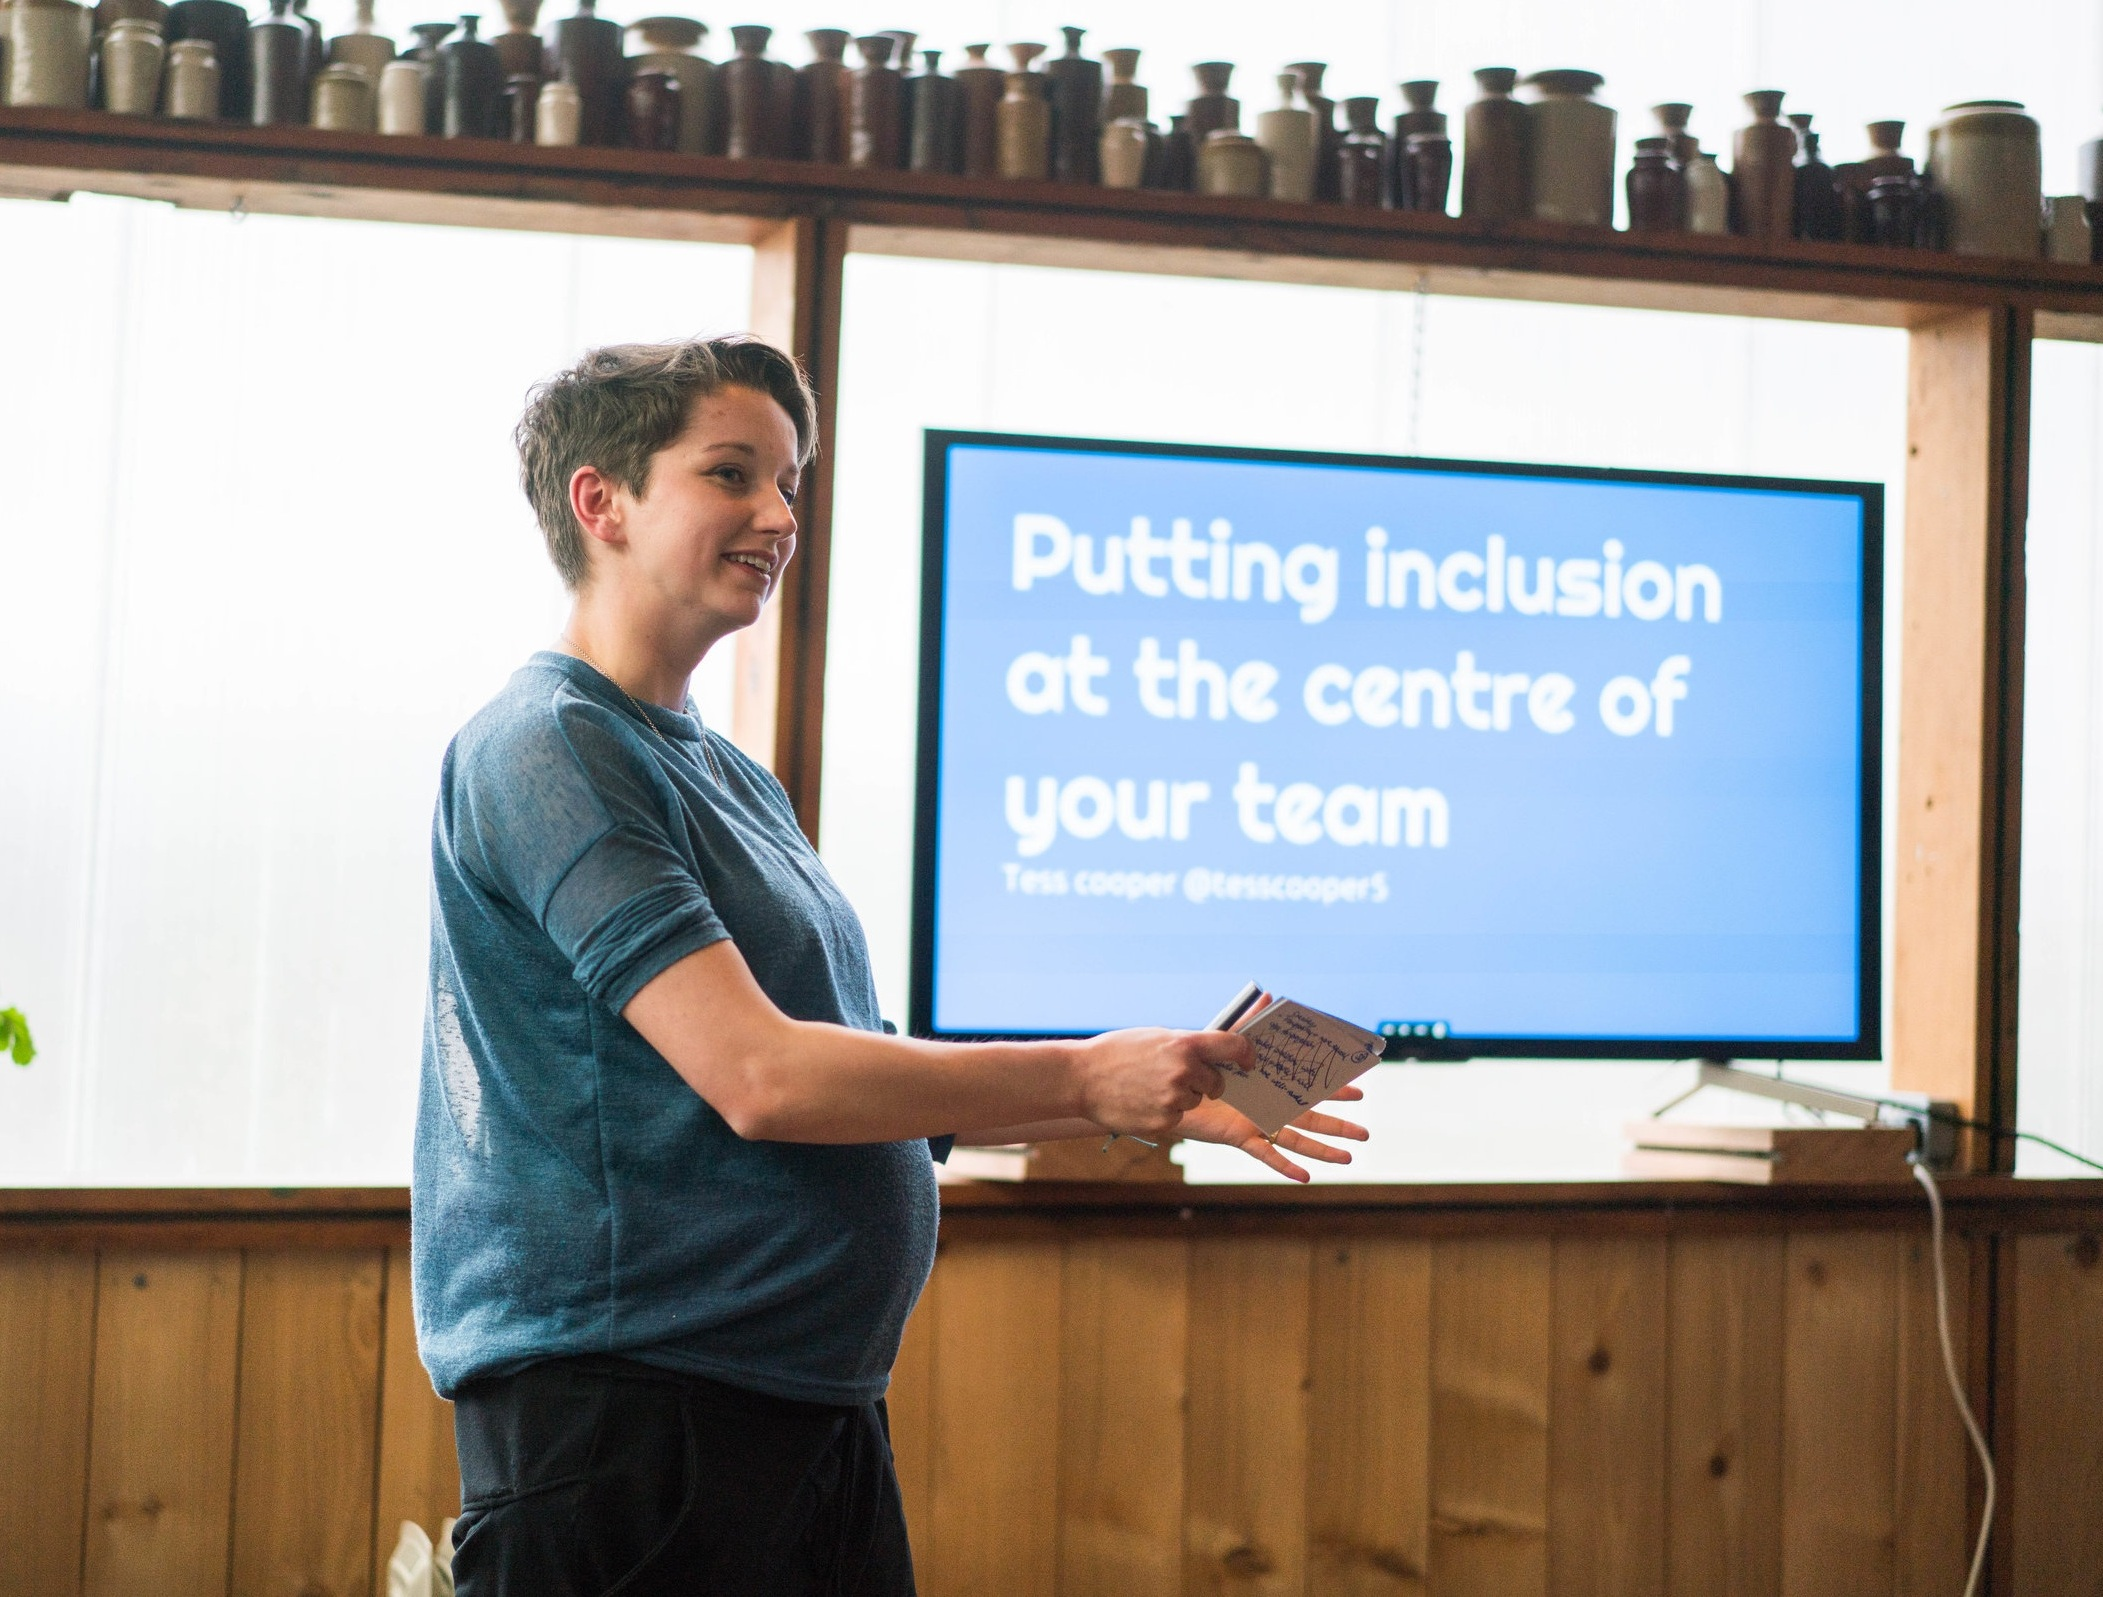 Lunch & Learn - In this 30 minute talk we explore a set of guiding principles to help organisations build inclusive teams where everyone can thrive. The talk contains first-hand examples of the impact that diversity and inclusion has on teams. It is followed by a practical activity and an opportunity for Q&A. Book us to speak at your company